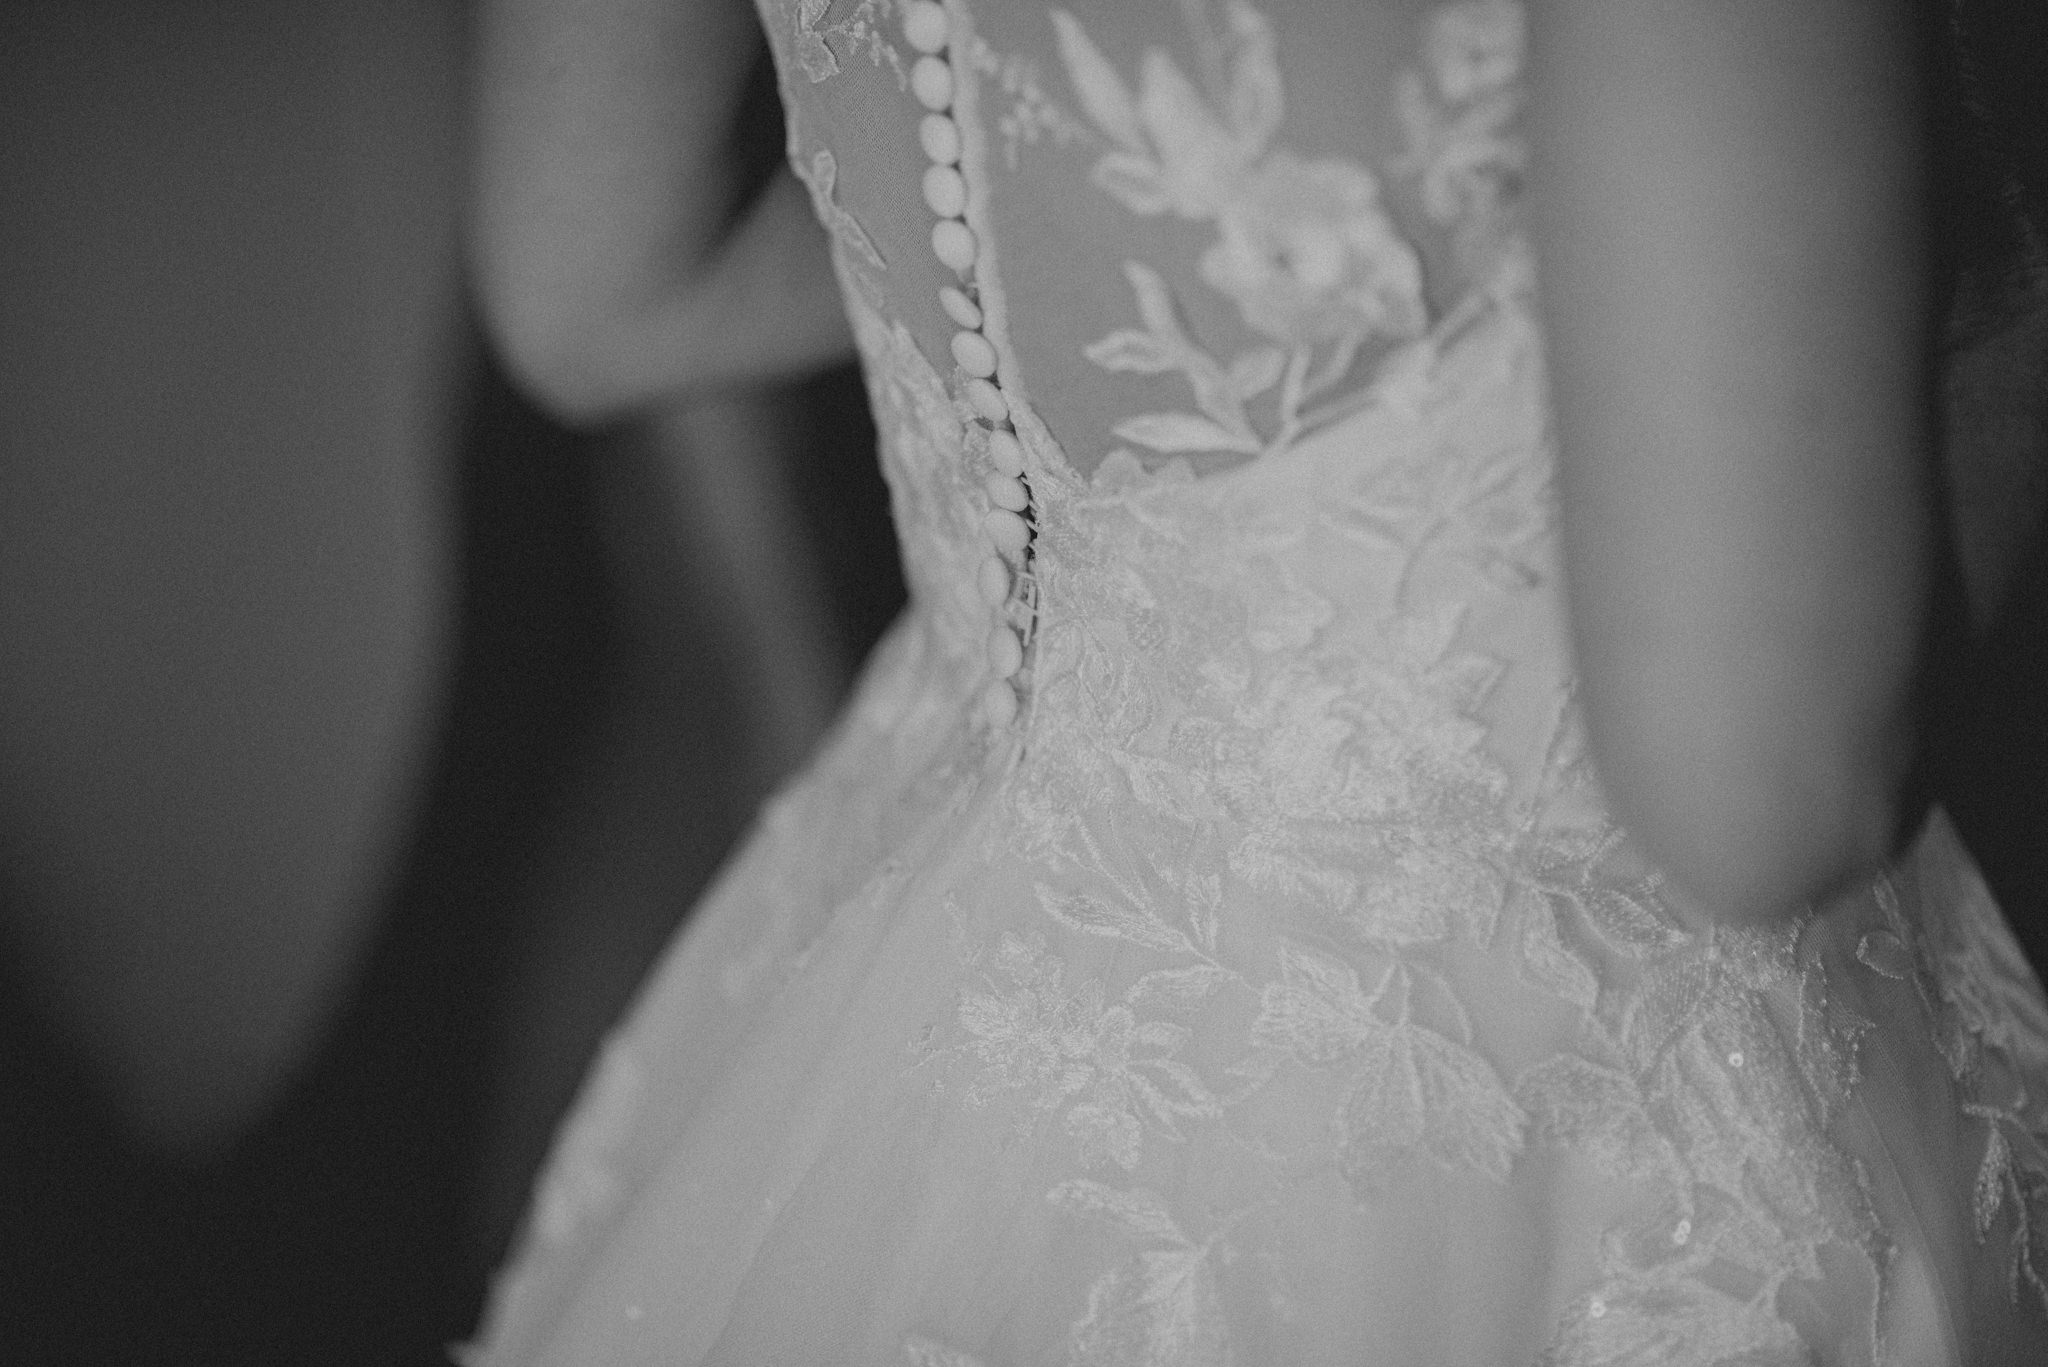 The back of a wedding dress worn by a woman